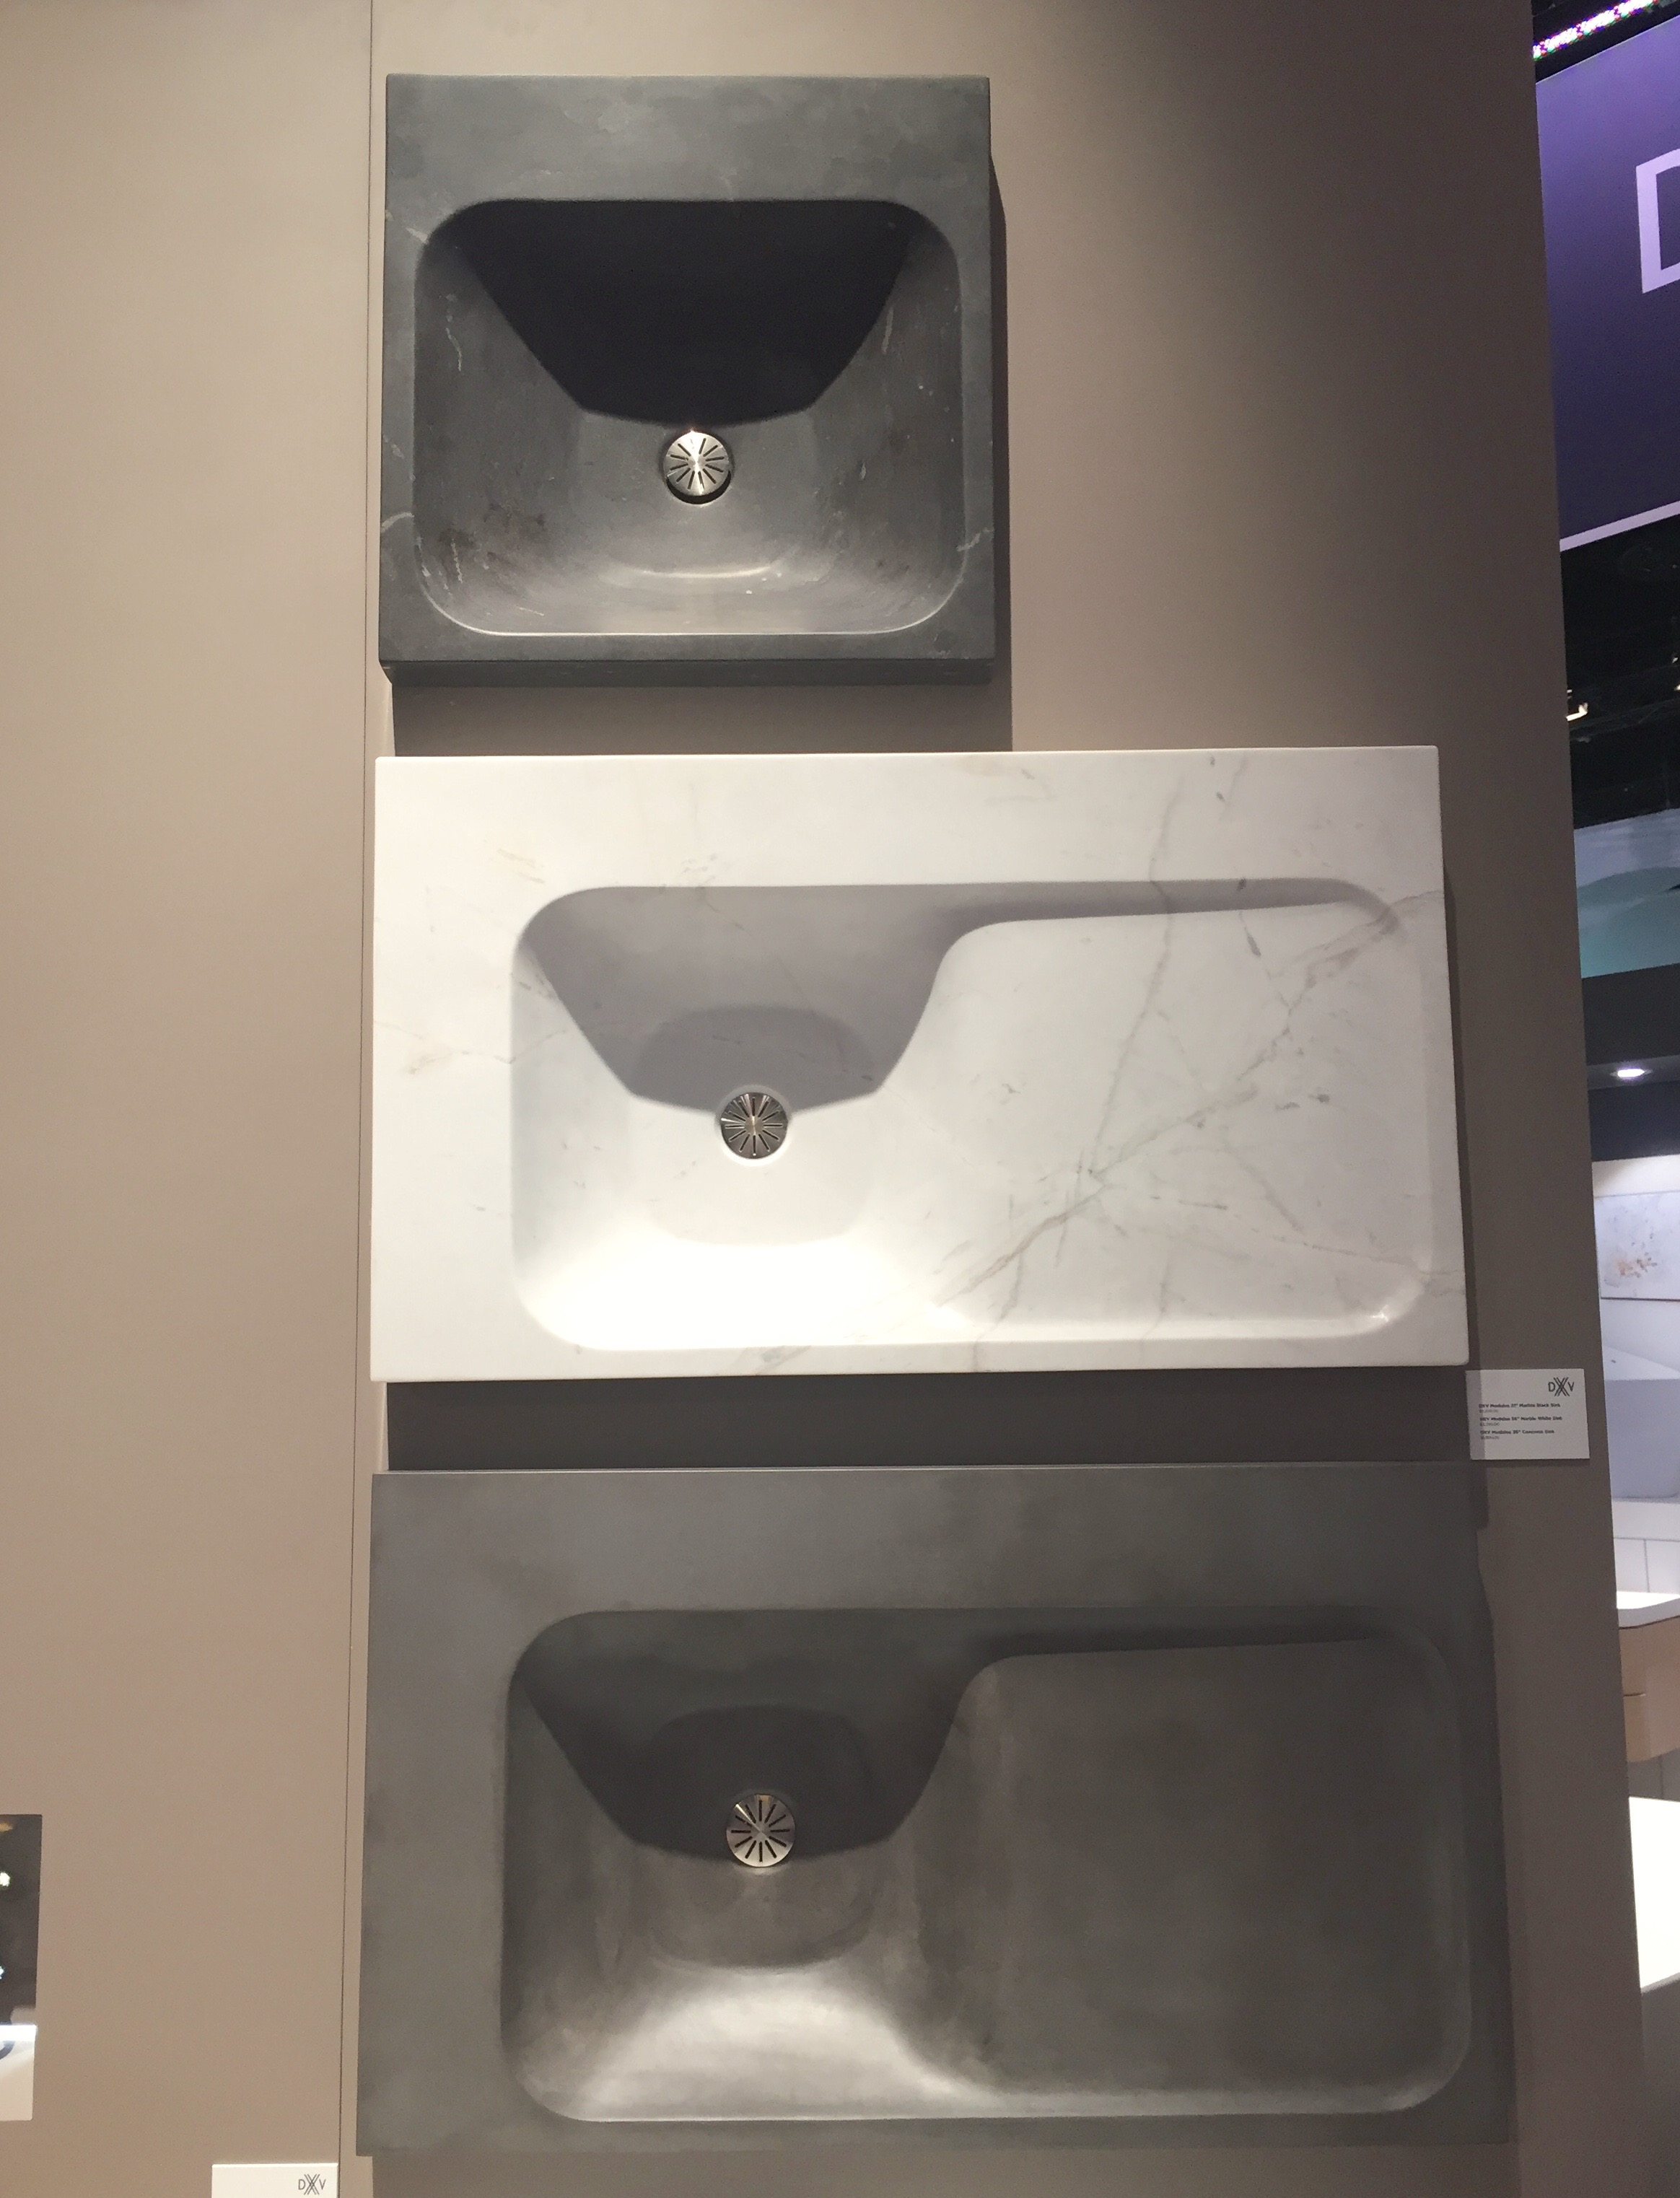 In addition to solid surface material, Modulus sinks come in (from top) black marble, white marble and concrete. Gorgeous!